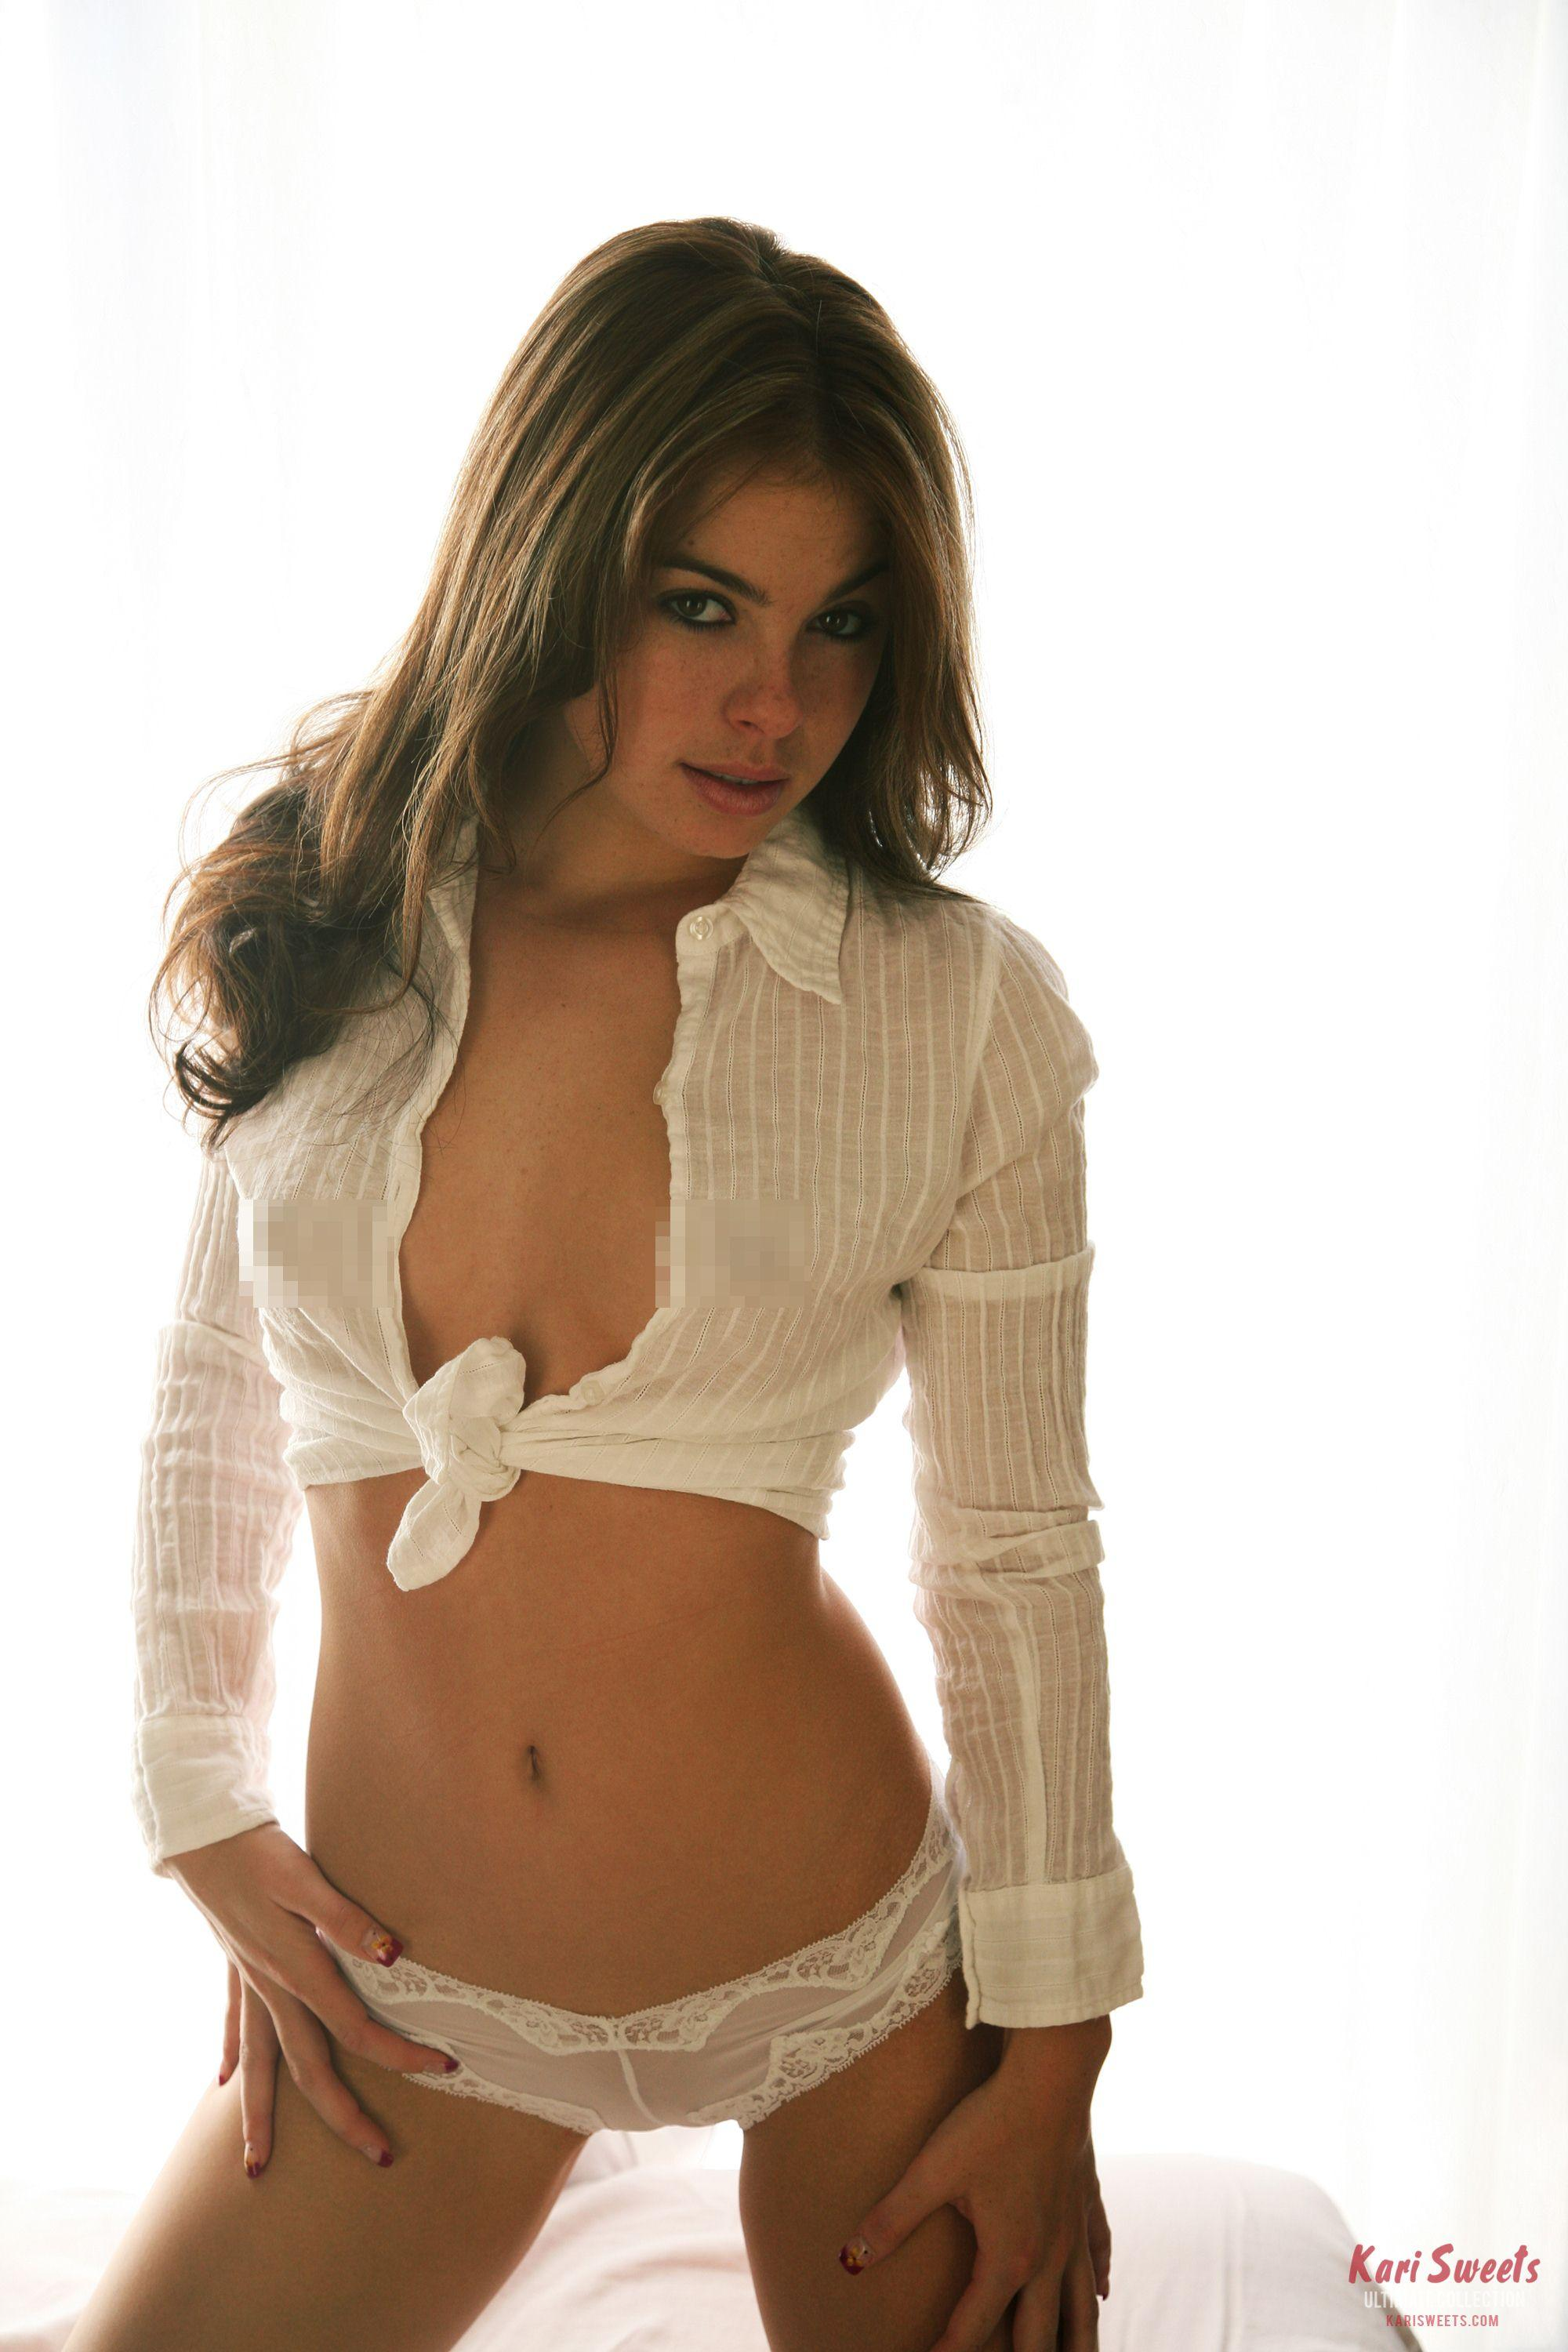 Kari Sweets gives a sexy stare in her white top and panties